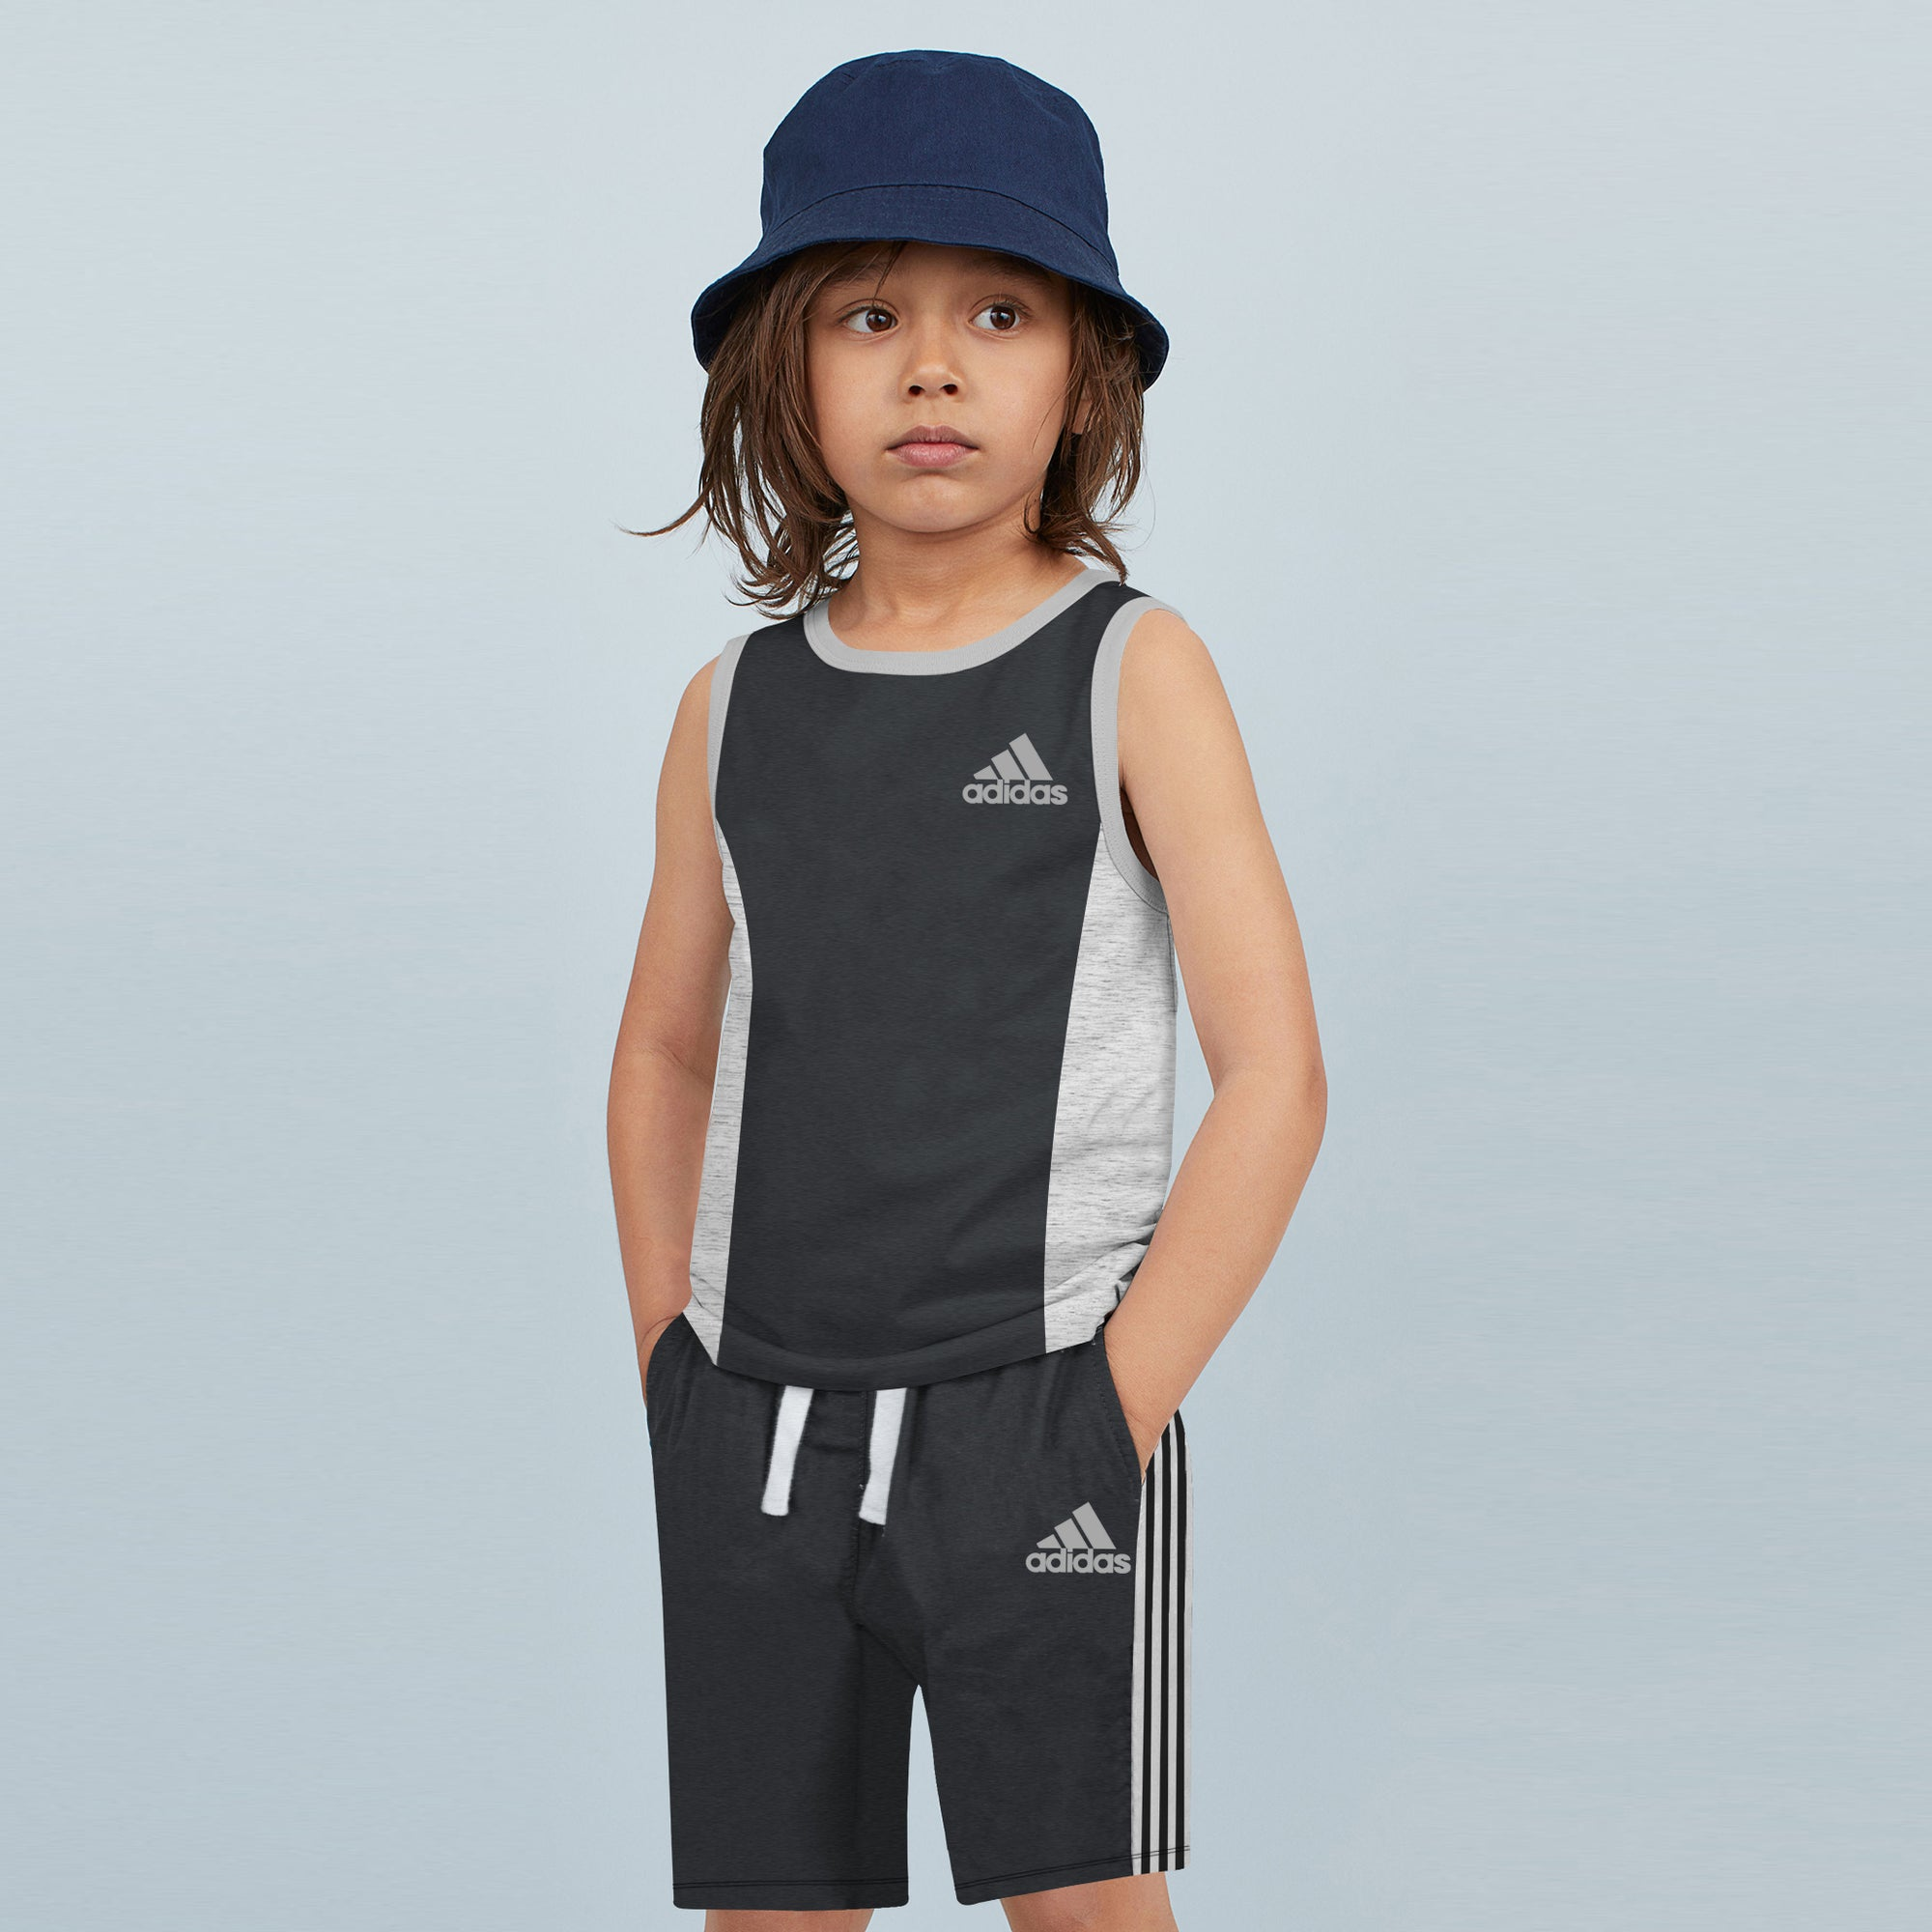 Adidas Single Jersey Sport Suit For Kids-Charcoal Melange & Grey Melange-BE8867